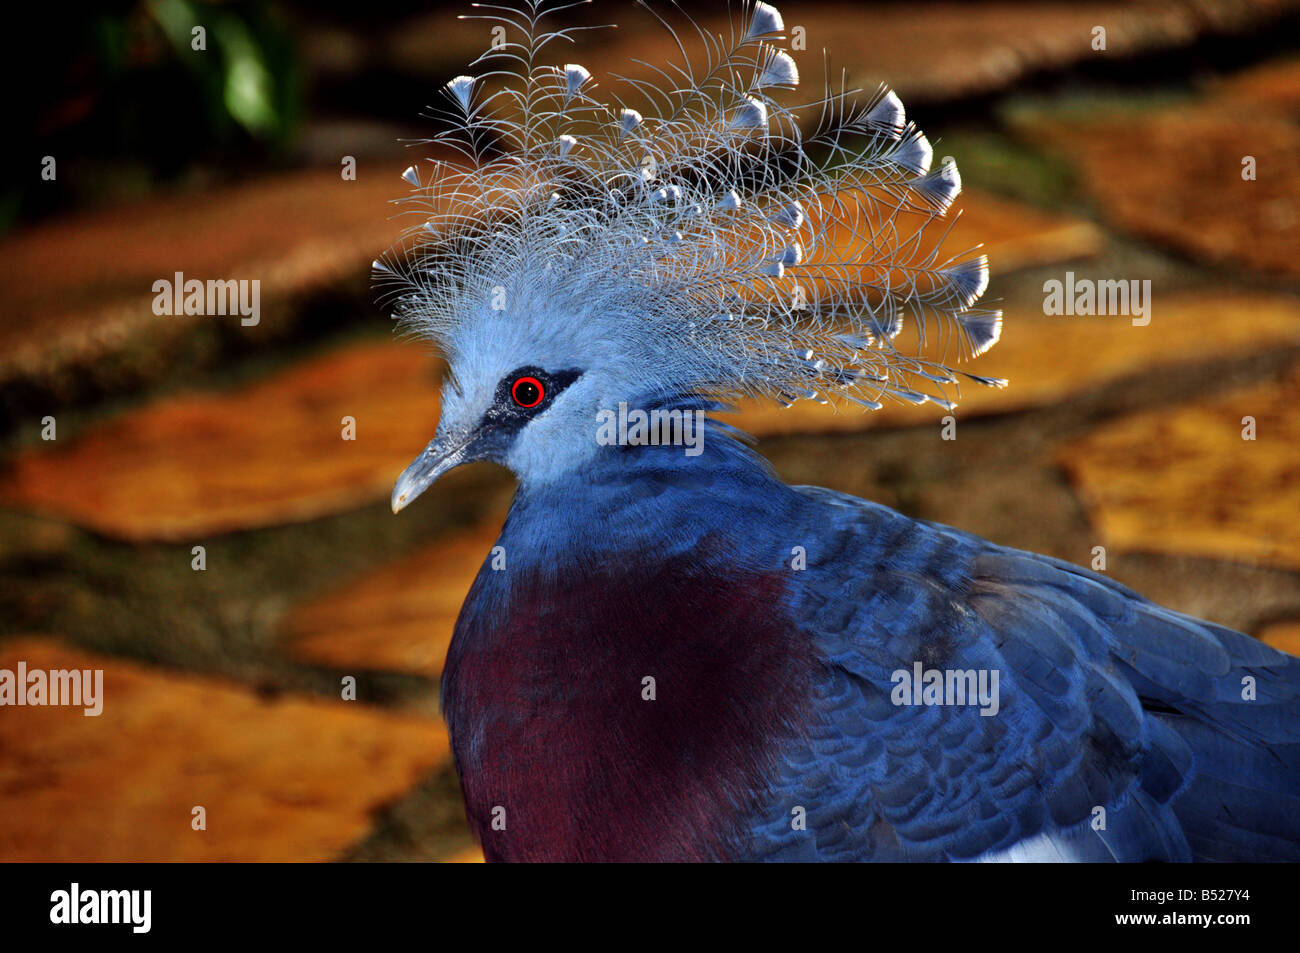 A stunning and exotic bird with blue plumage a red eye and blue crest Stock Photo